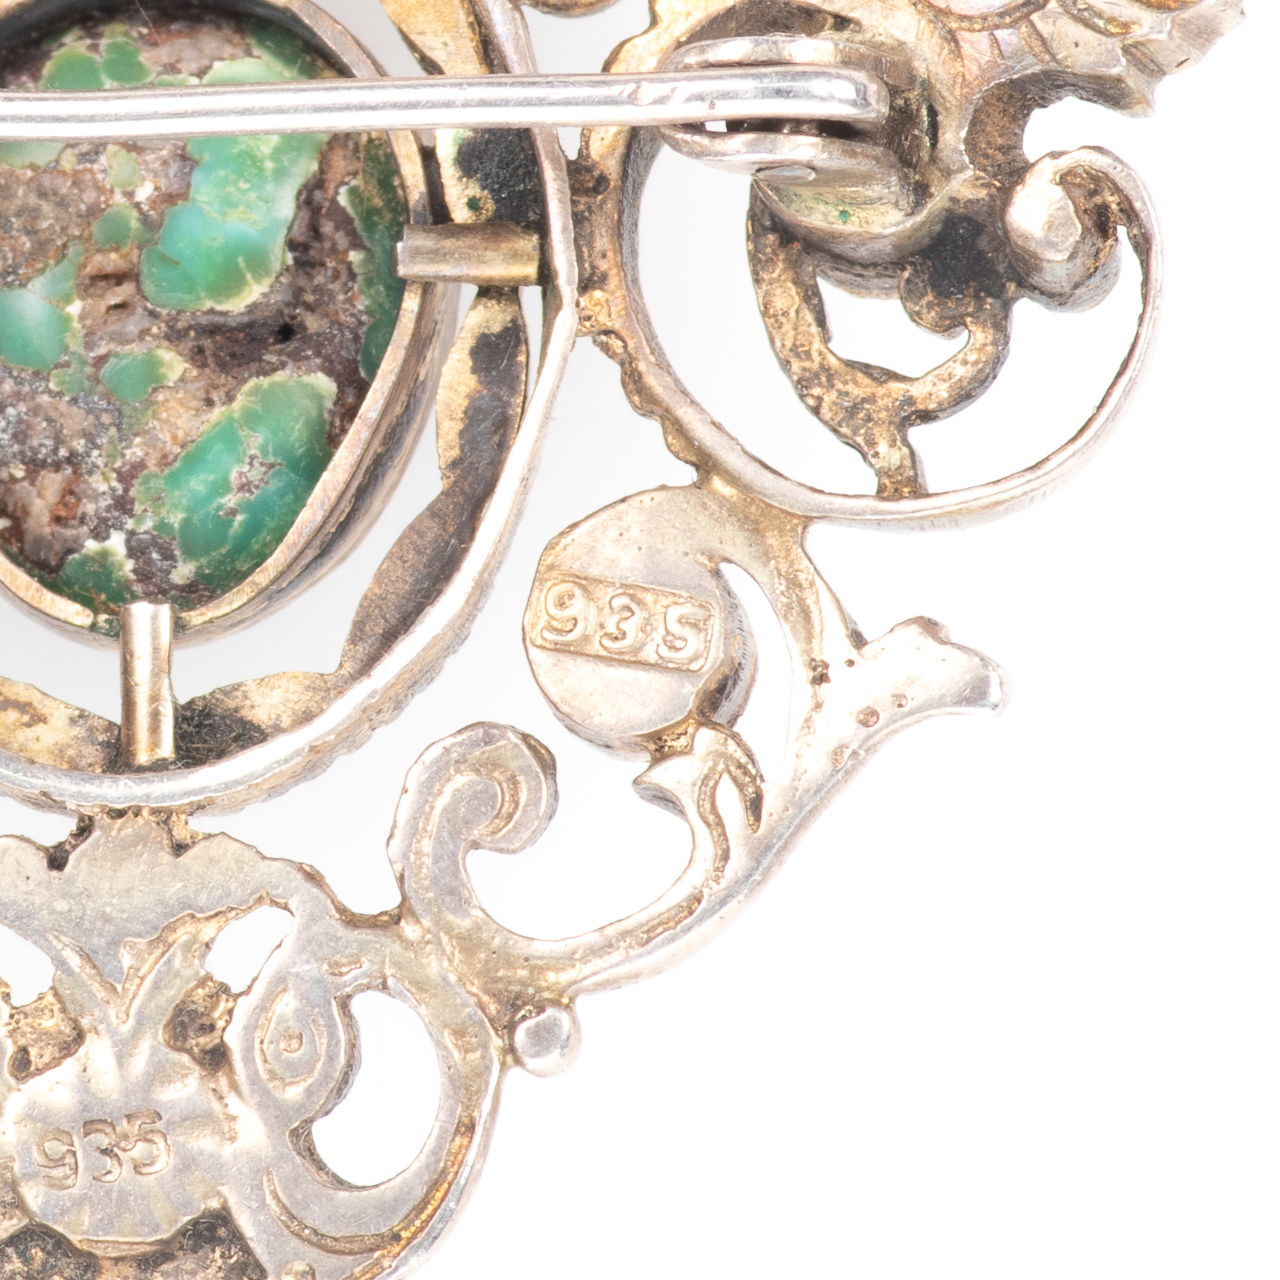 Austro-Hungarian 935 Silver Emerald, Amethyst & Turquoise Brooch - Image 6 of 6